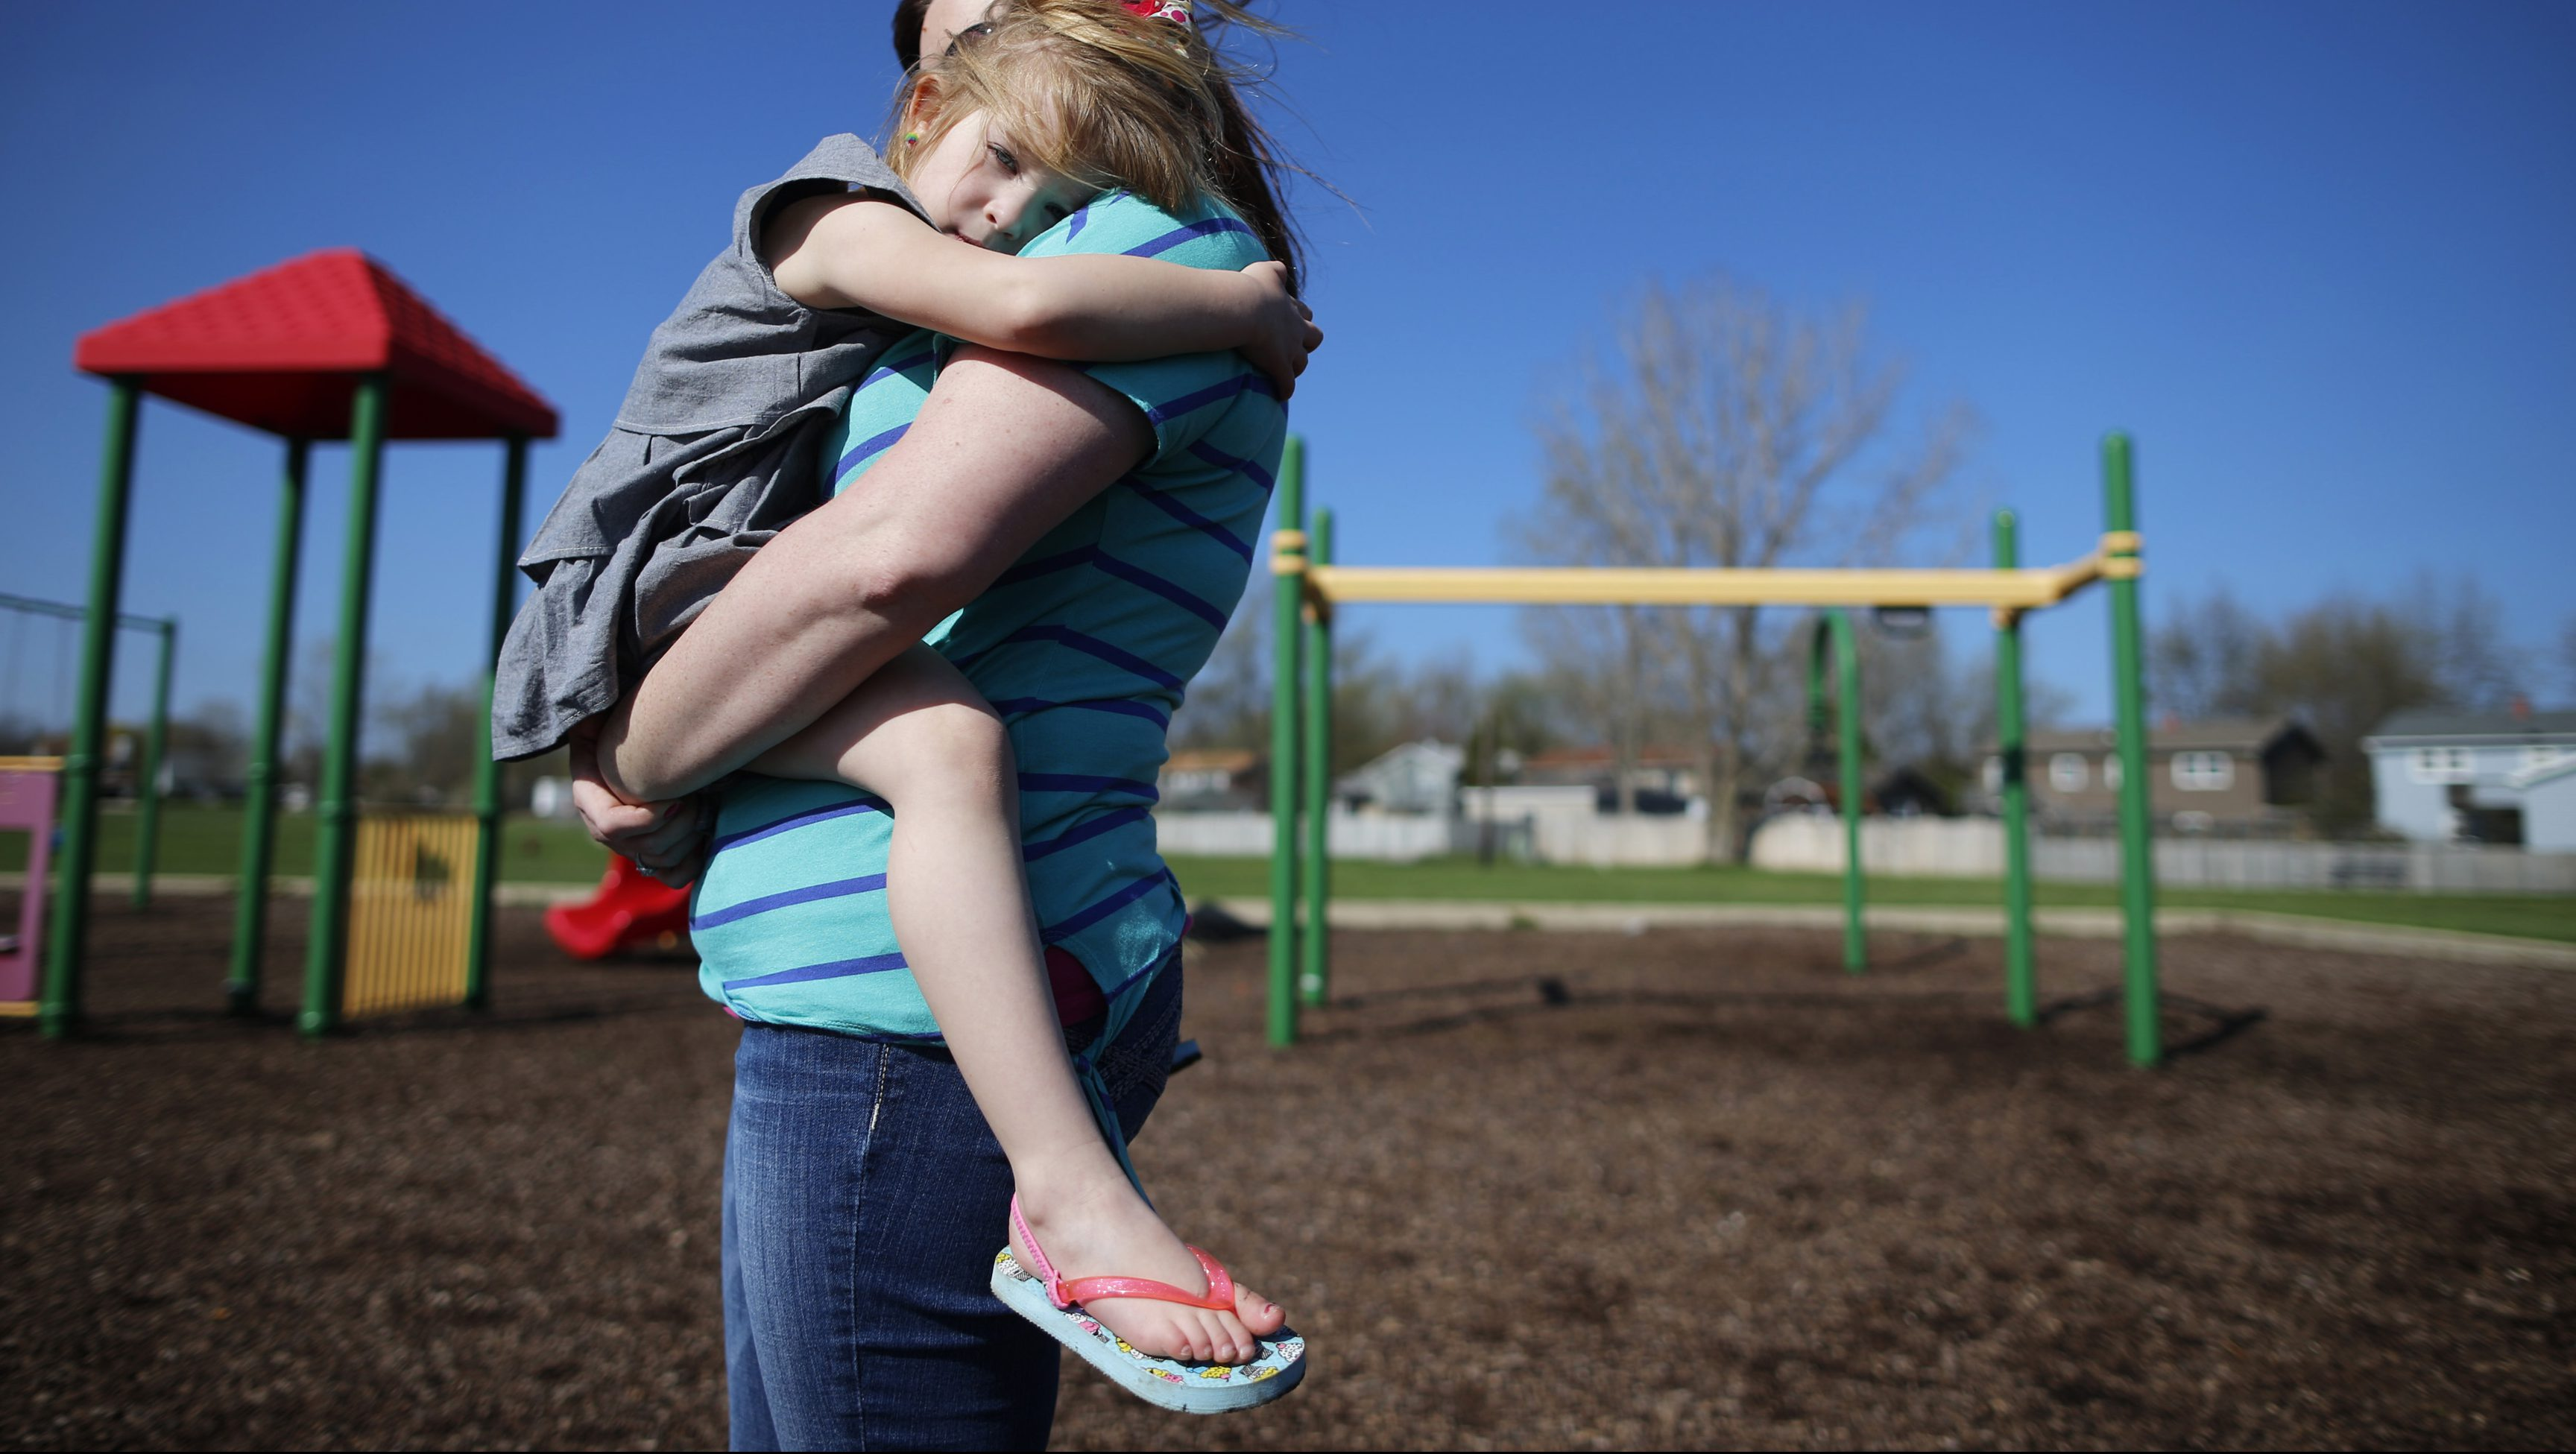 Andrea Smith holds her daughter Norah at a playground in Winthrop Harbor, Illinois, May 9, 2014.